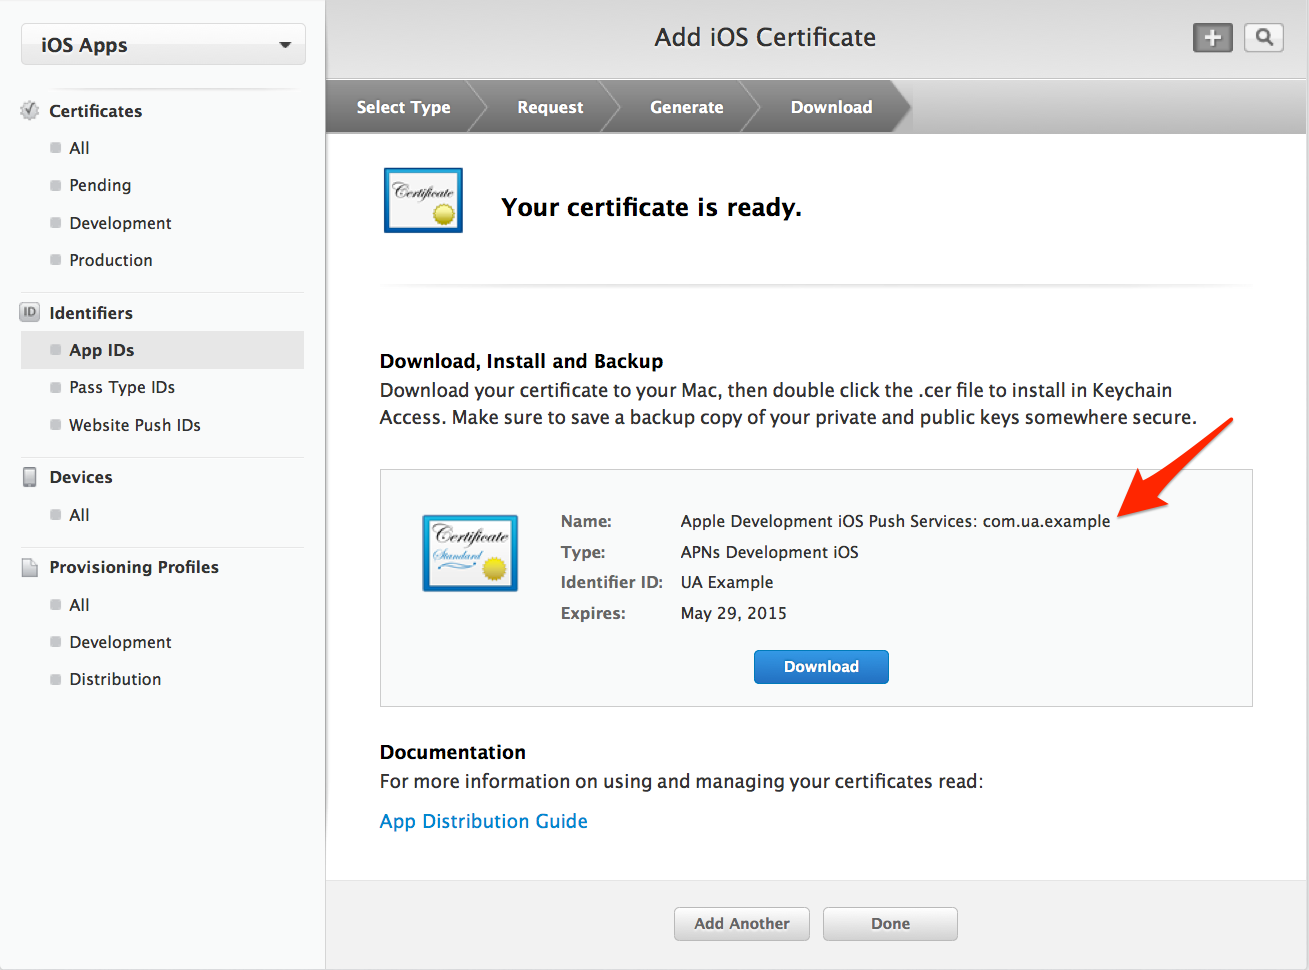 Add_-_iOS_Certificates_-_Apple_Developer.png